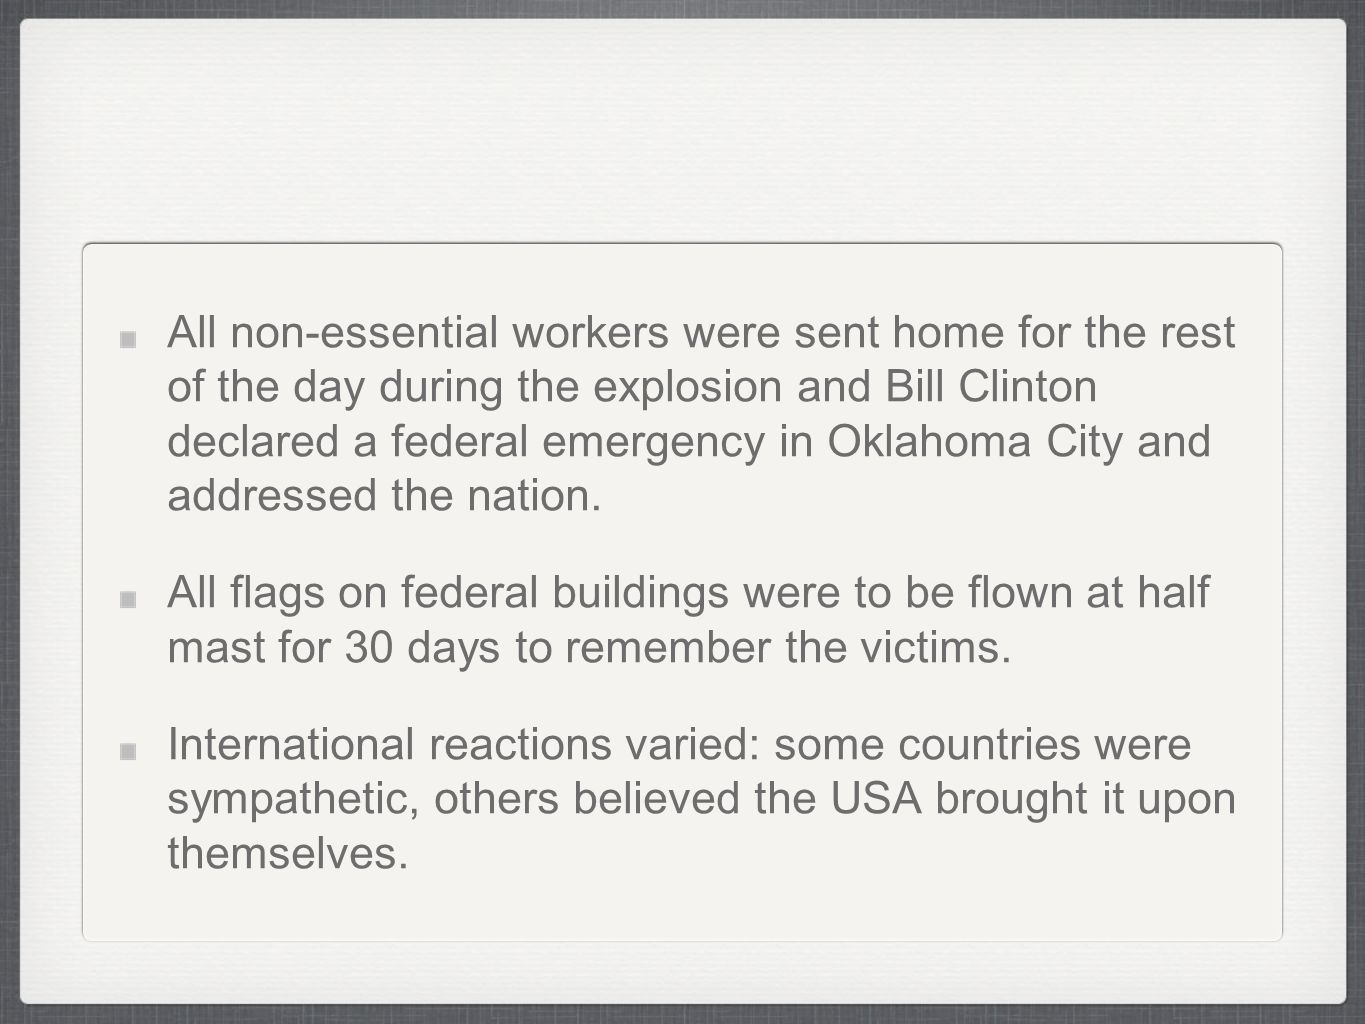 All non-essential workers were sent home for the rest of the day during the explosion and Bill Clinton declared a federal emergency in Oklahoma City and addressed the nation.